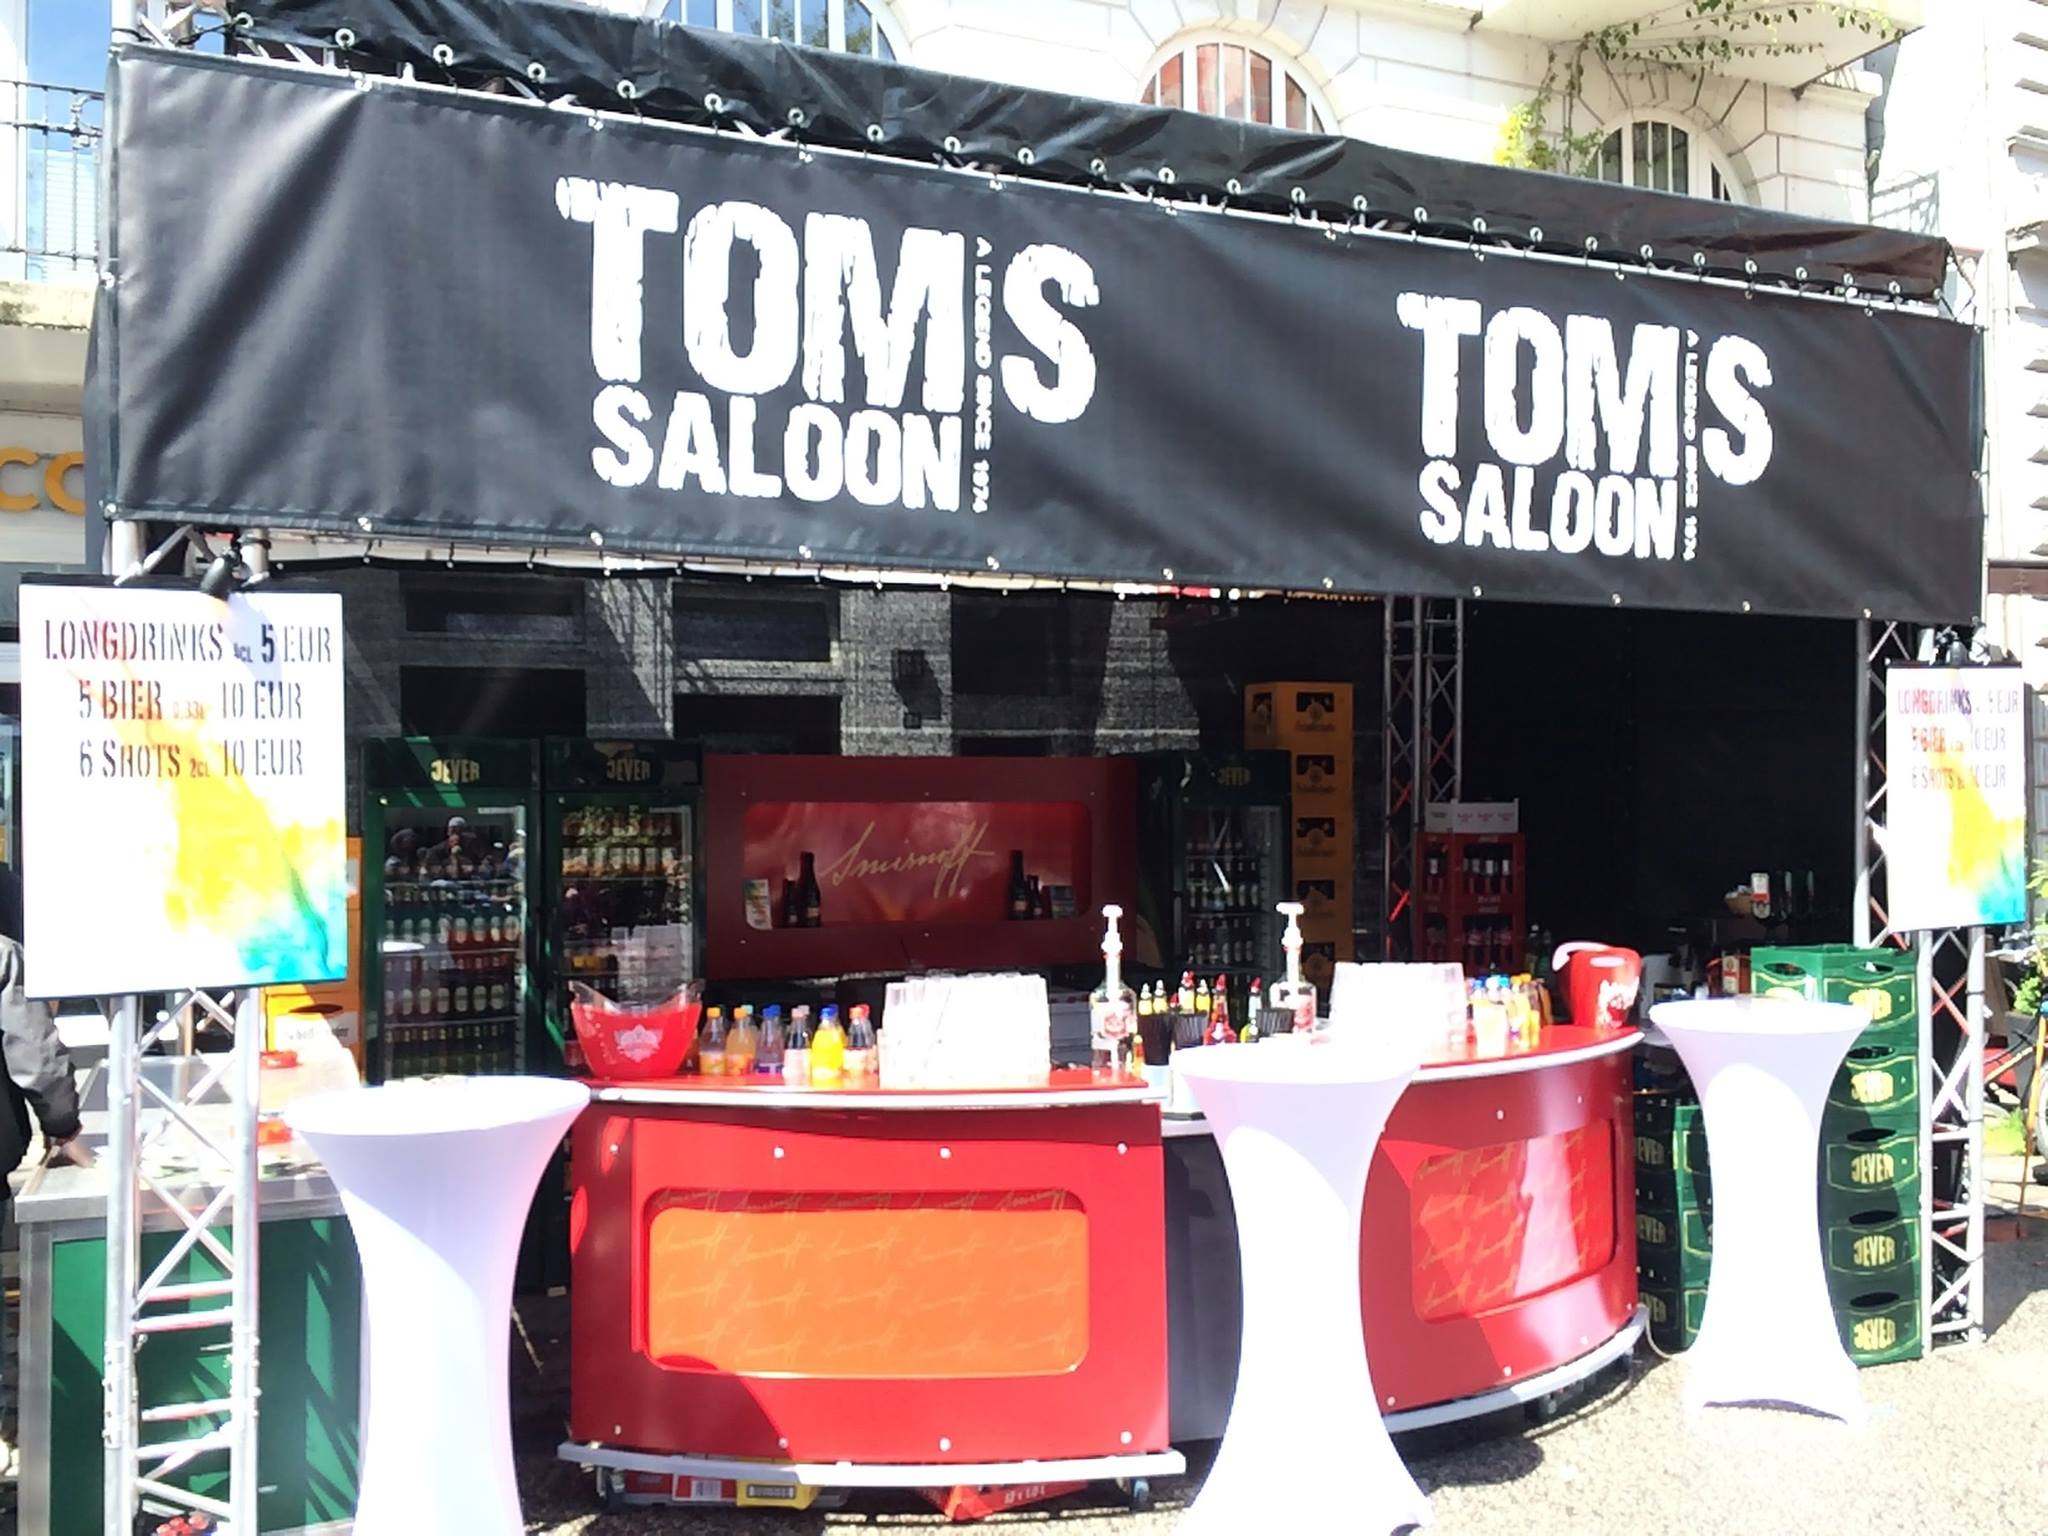 Toms Saloon